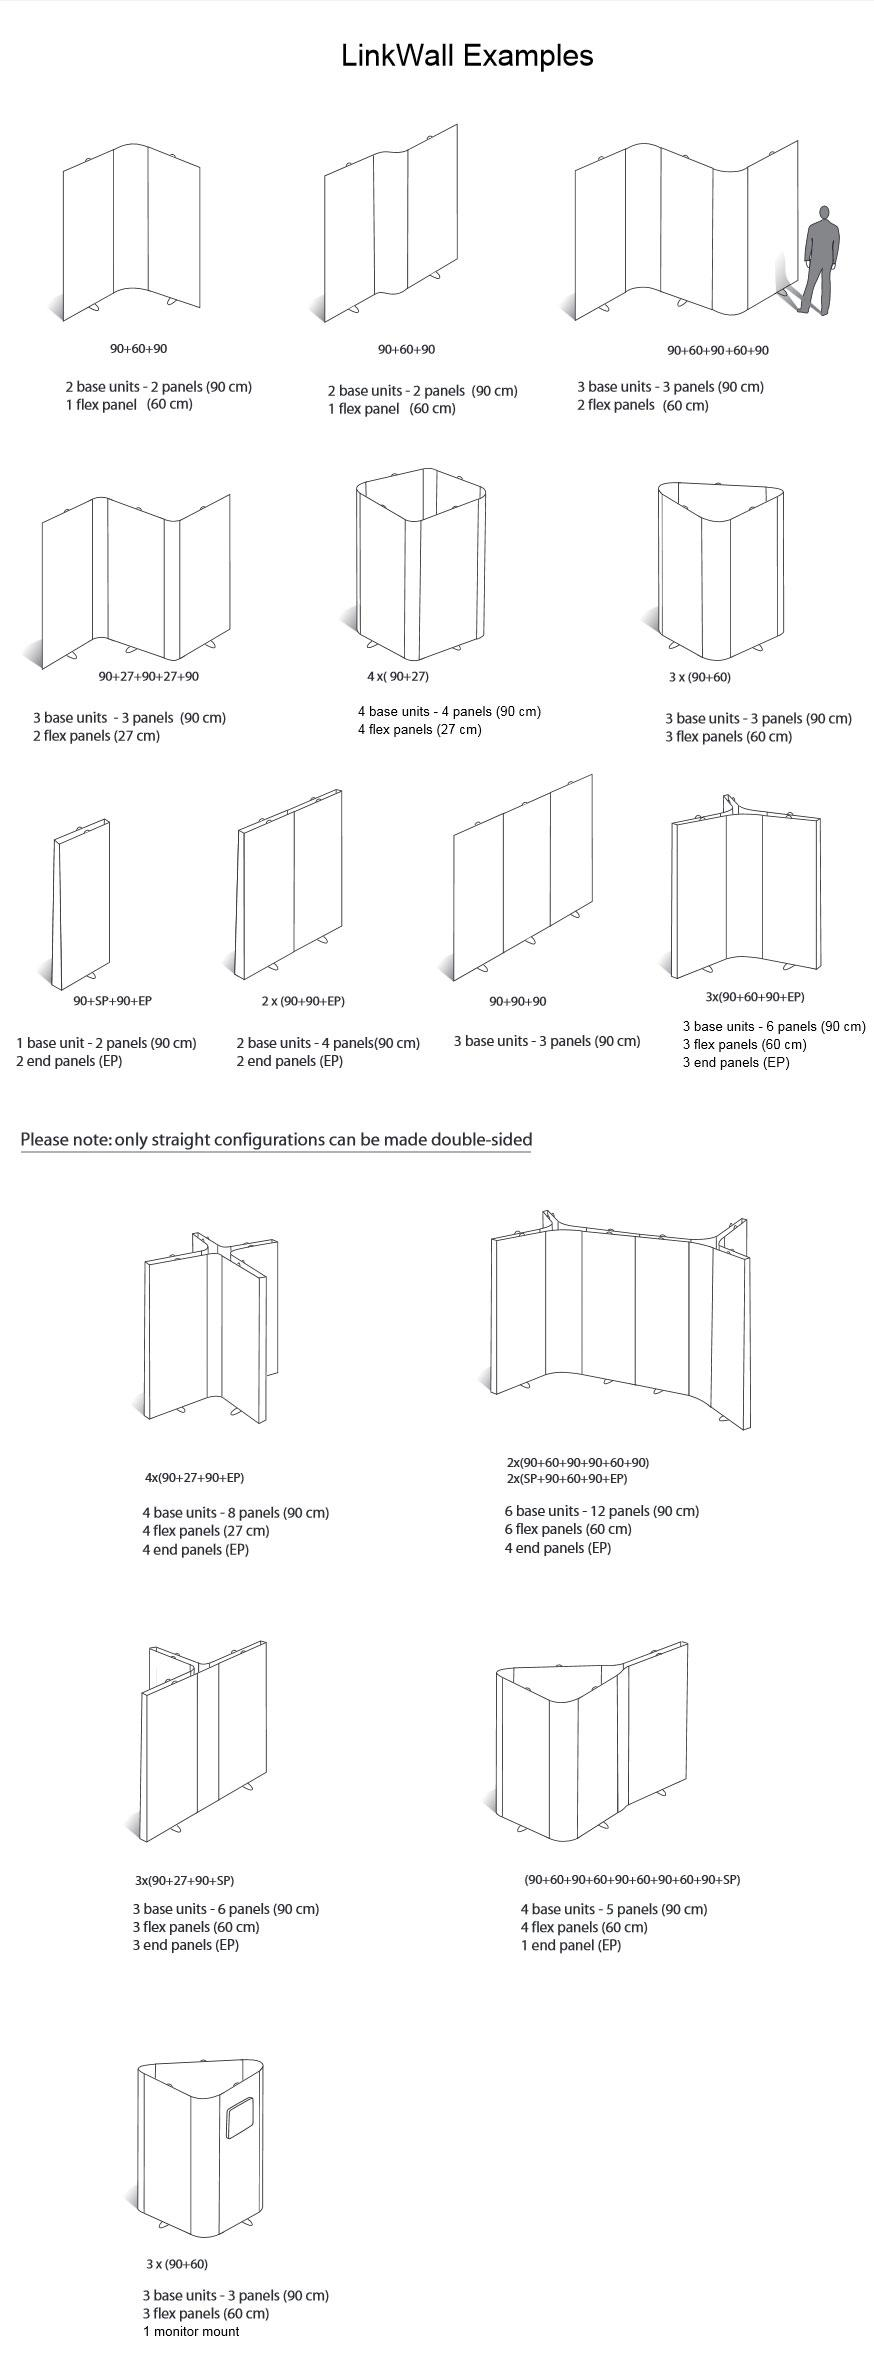 linkwall-examples